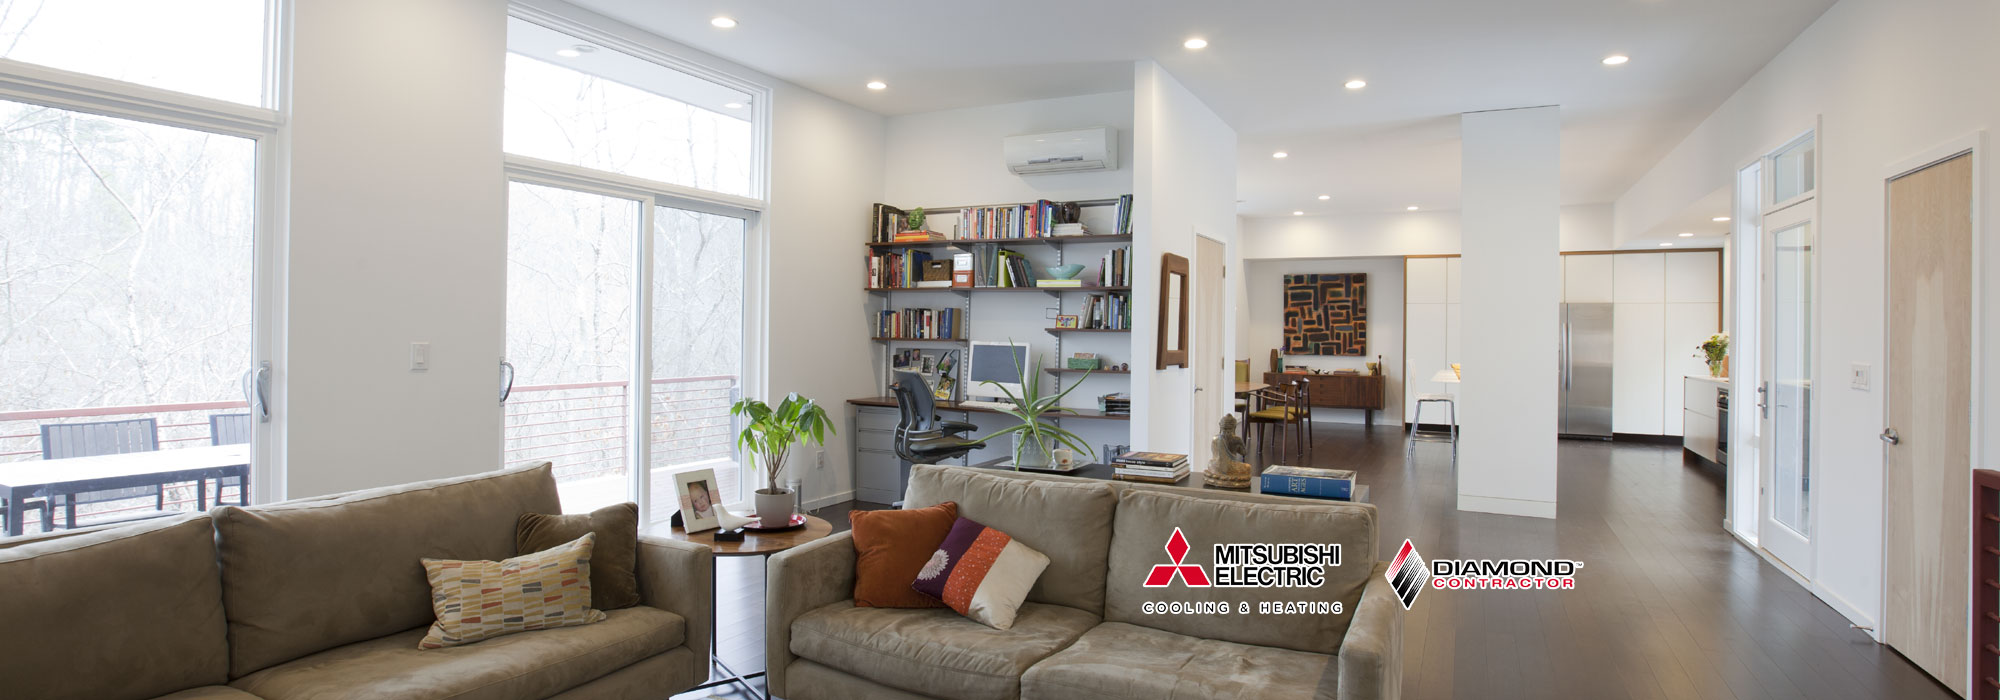 solutions mitsubishi ductless indoor and many available pin can unit heating so styles cooling with